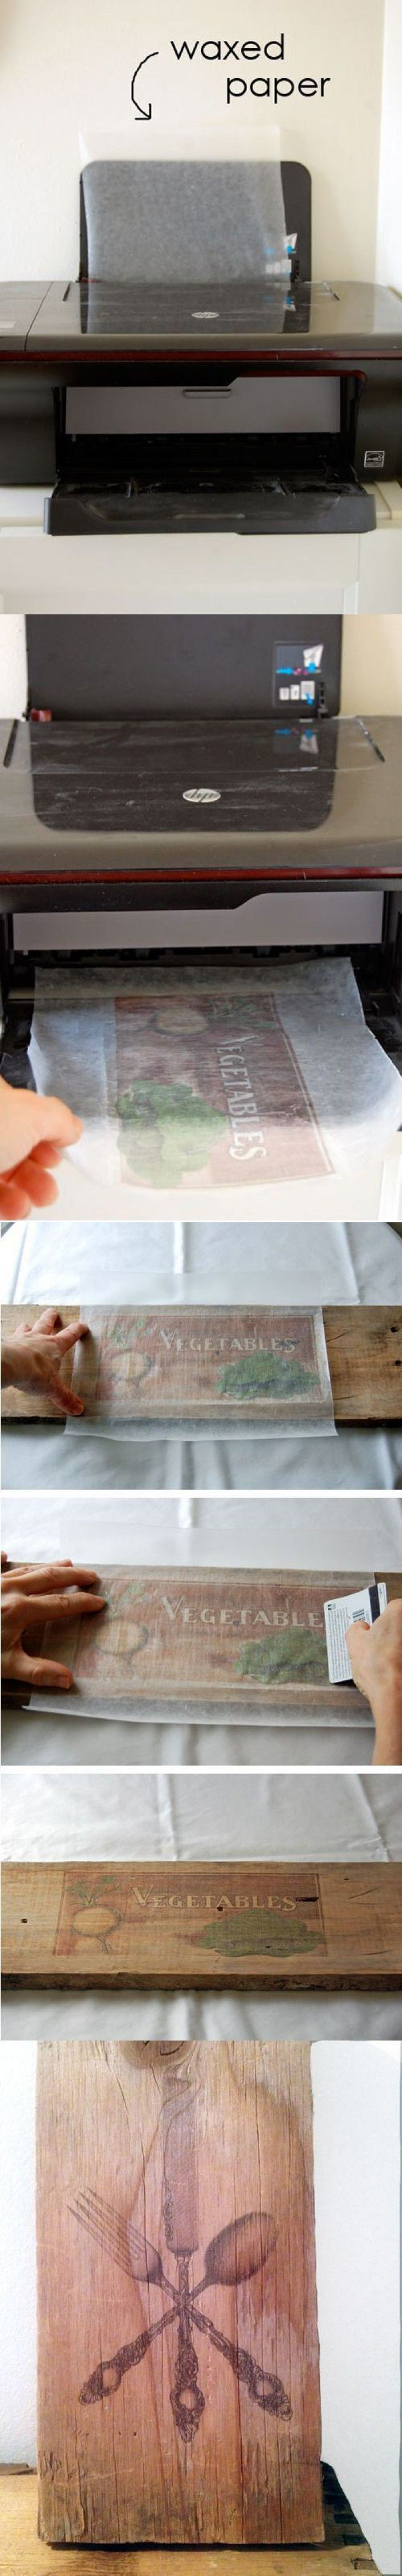 How To Print Pictures On Wood Waxed Paper Transfer Foto Op Hout